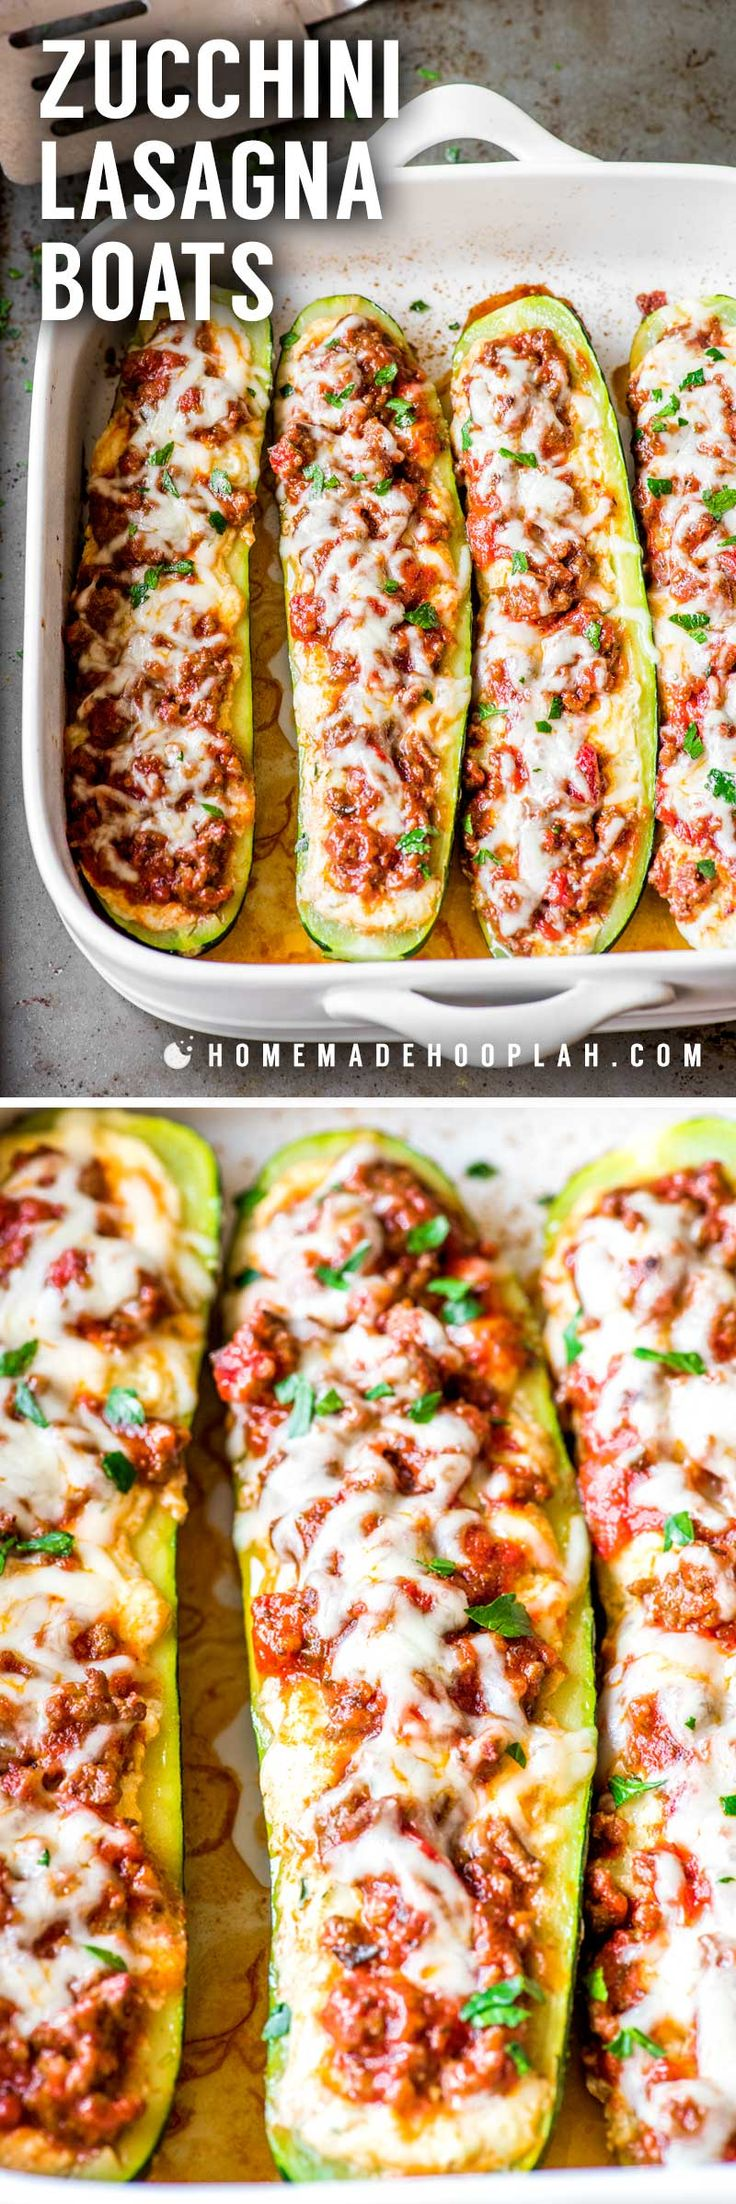 Zucchini Lasagna Boats! Tender baked zucchini filled with a mix of flavorful cheeses and topped with a meaty Ragu sauce. Plus, it's easy to adjust the serving amount of this recipe to fit any time, date, or occasion! #AD #SimmeredinTradition   HomemadeHooplah.com